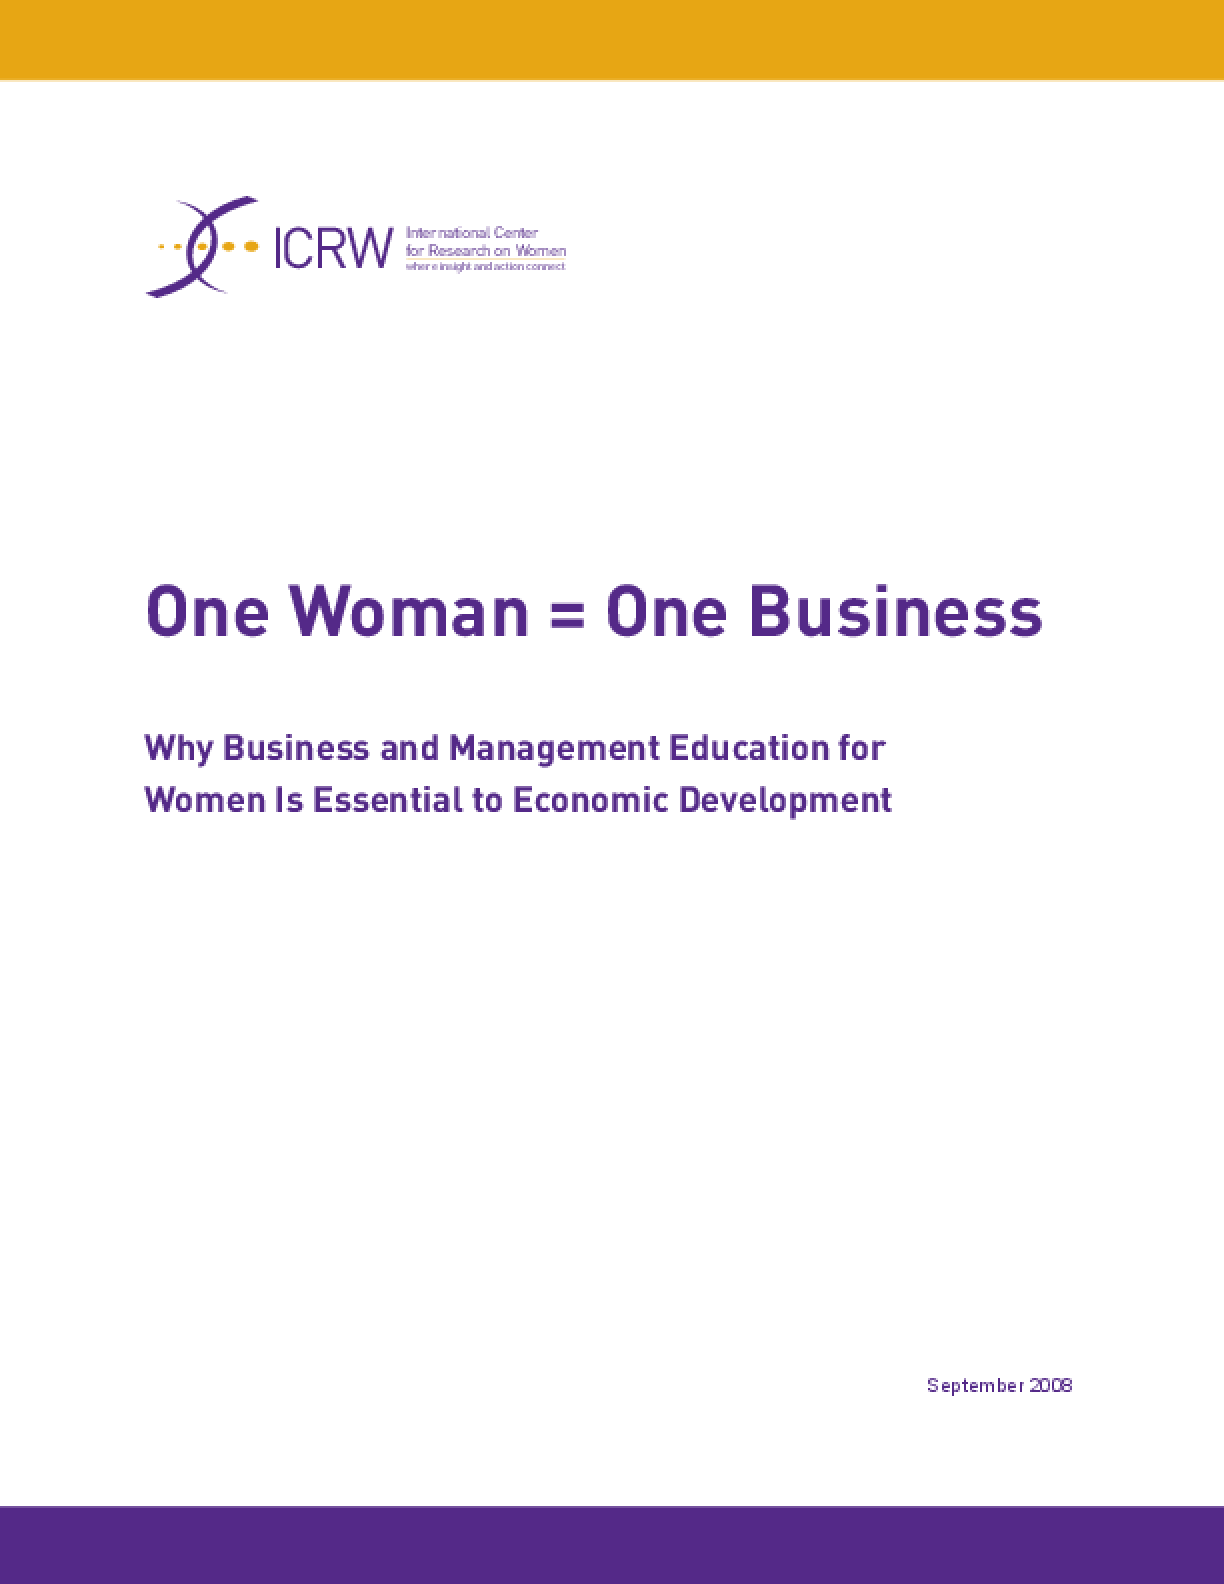 One Woman = One Business: Why Business and Management Education for Women Is Essential to Economic Development